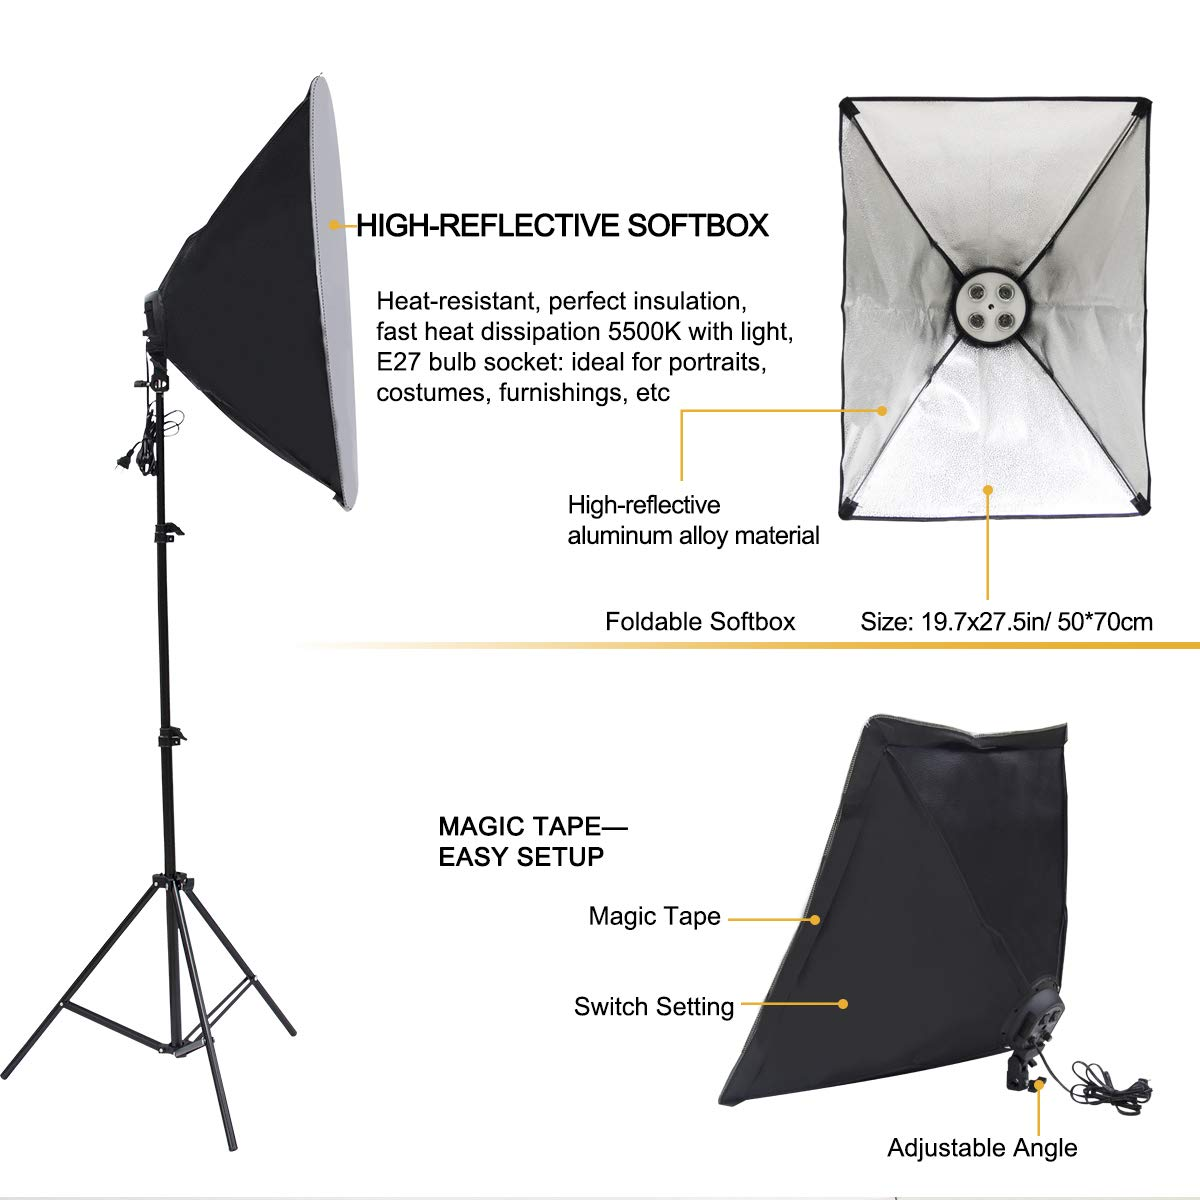 Wisamic Photography Video Studio Lighting Kit, Background Support System 10ft x 6.6ft/2MX3M with 3 Color Backdrop, 3 Umbrella, 3 Softbox, Continuous Lighting Kit for Photo Video Shooting Photography by Wisamic (Image #4)